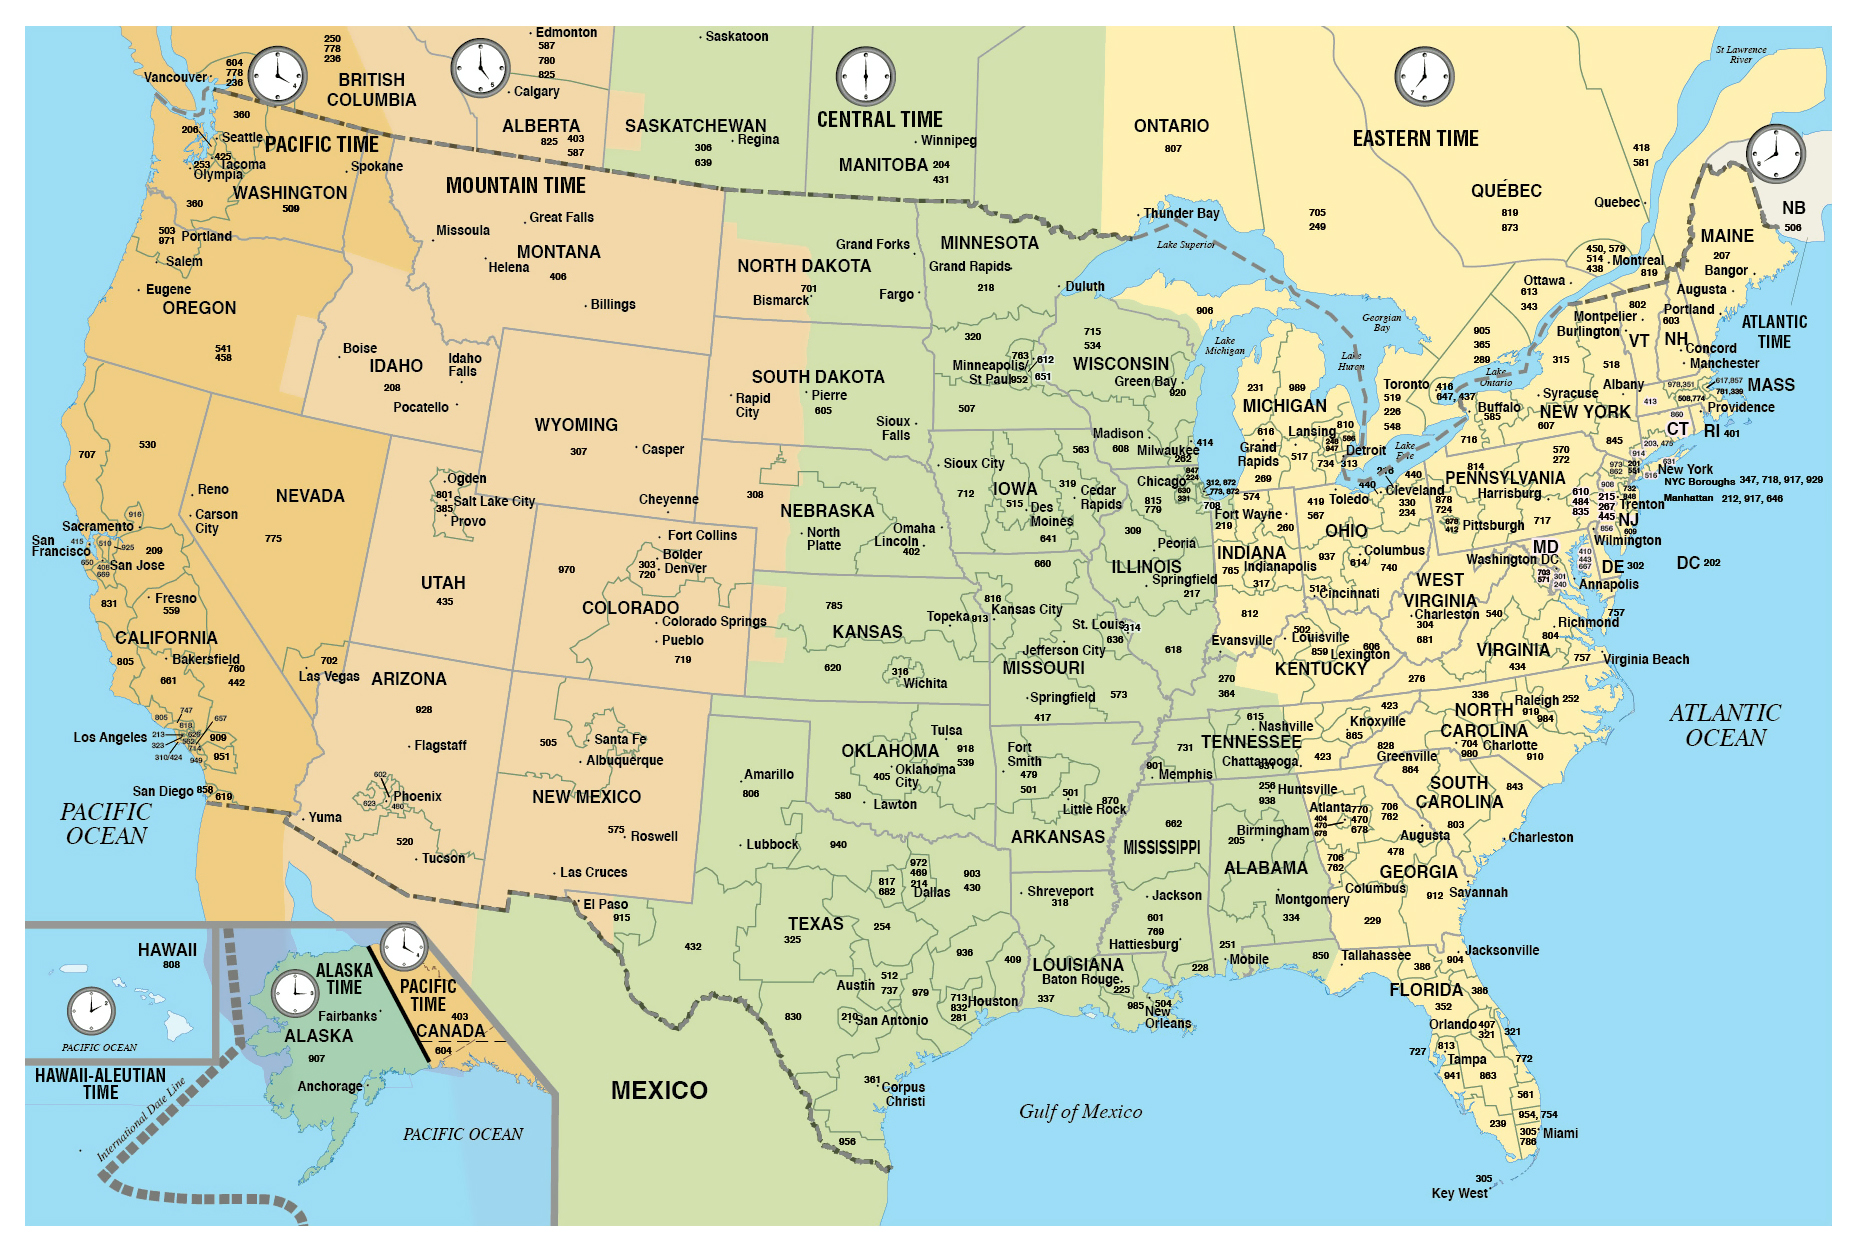 Picture of: Large Usa Area Codes Map With Time Zones Usa United States Of America North America Mapsland Maps Of The World